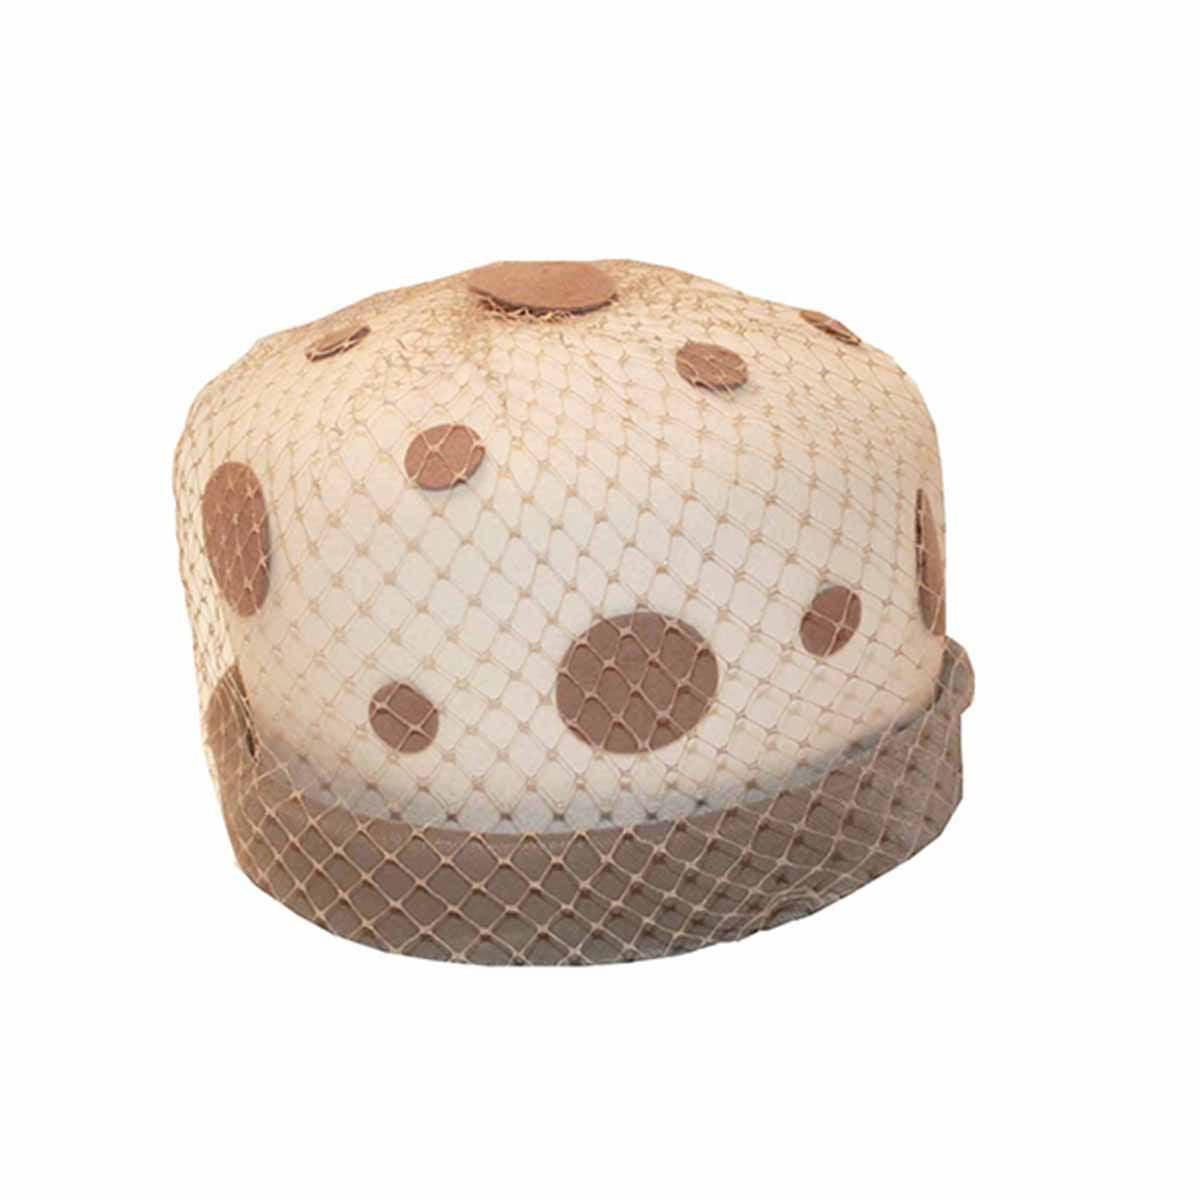 1960s Mod Polka Dot Vintage Hat in Tan & Cream, Hat Size 20.5